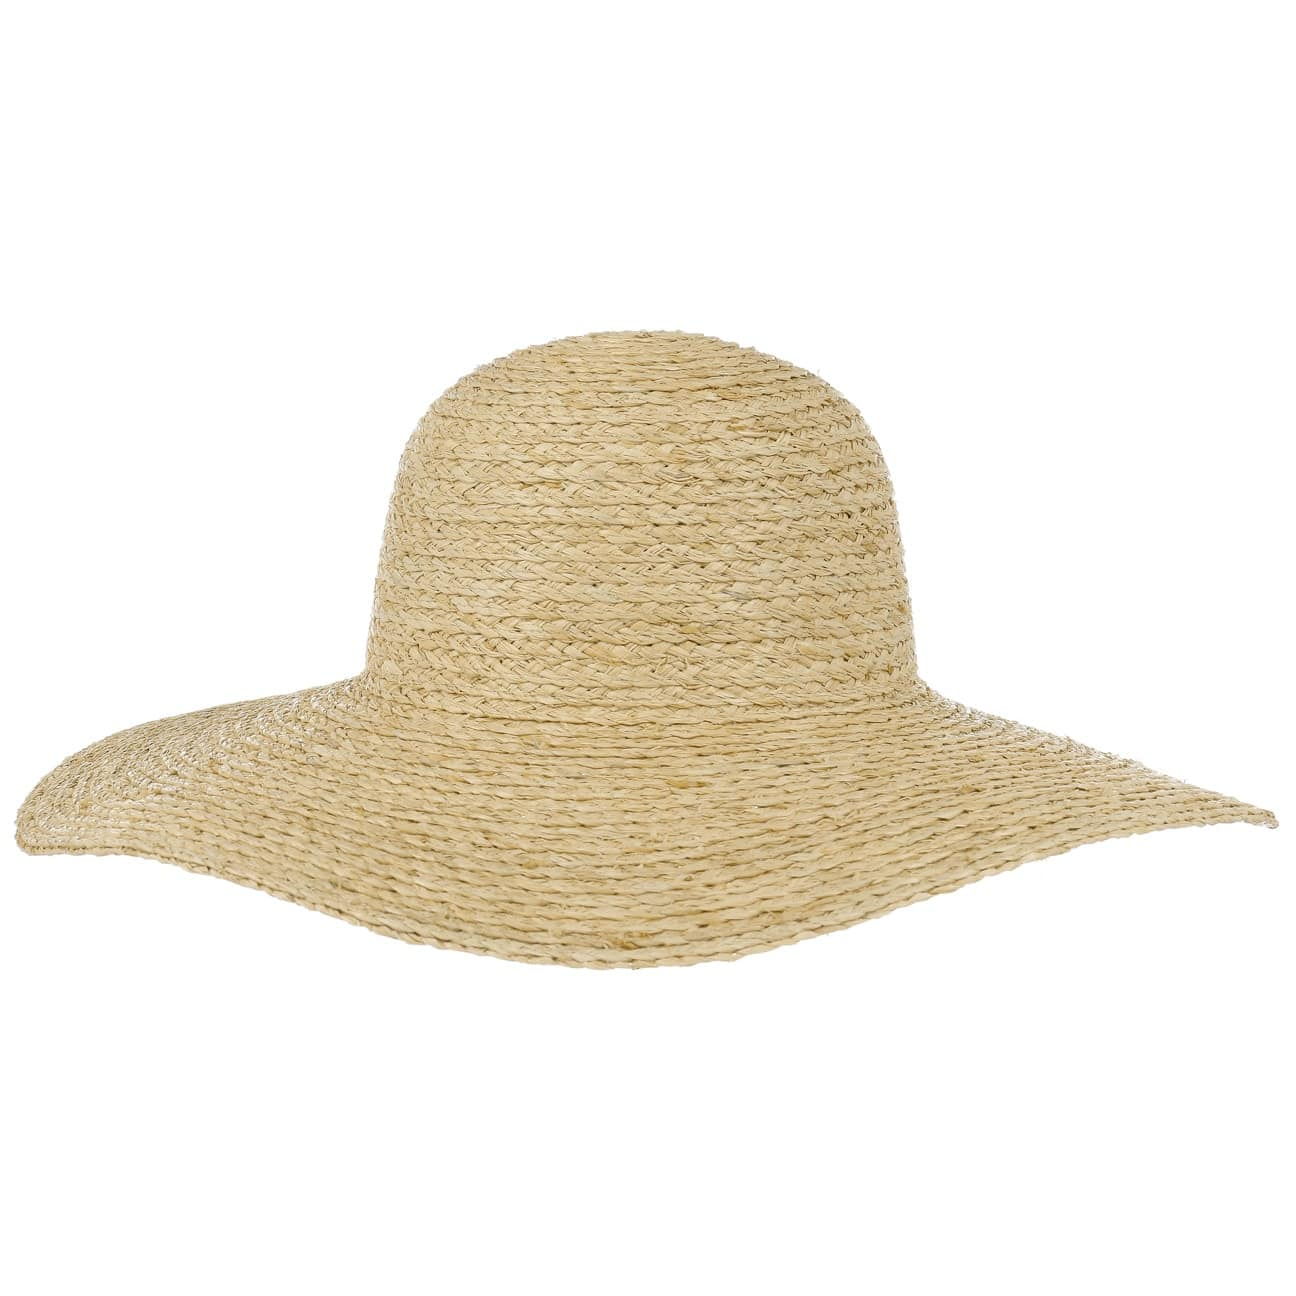 ... 1 · Women´s Raffia Straw Floppy Hat by Lierys - nature 4 a36b2ba10cb9